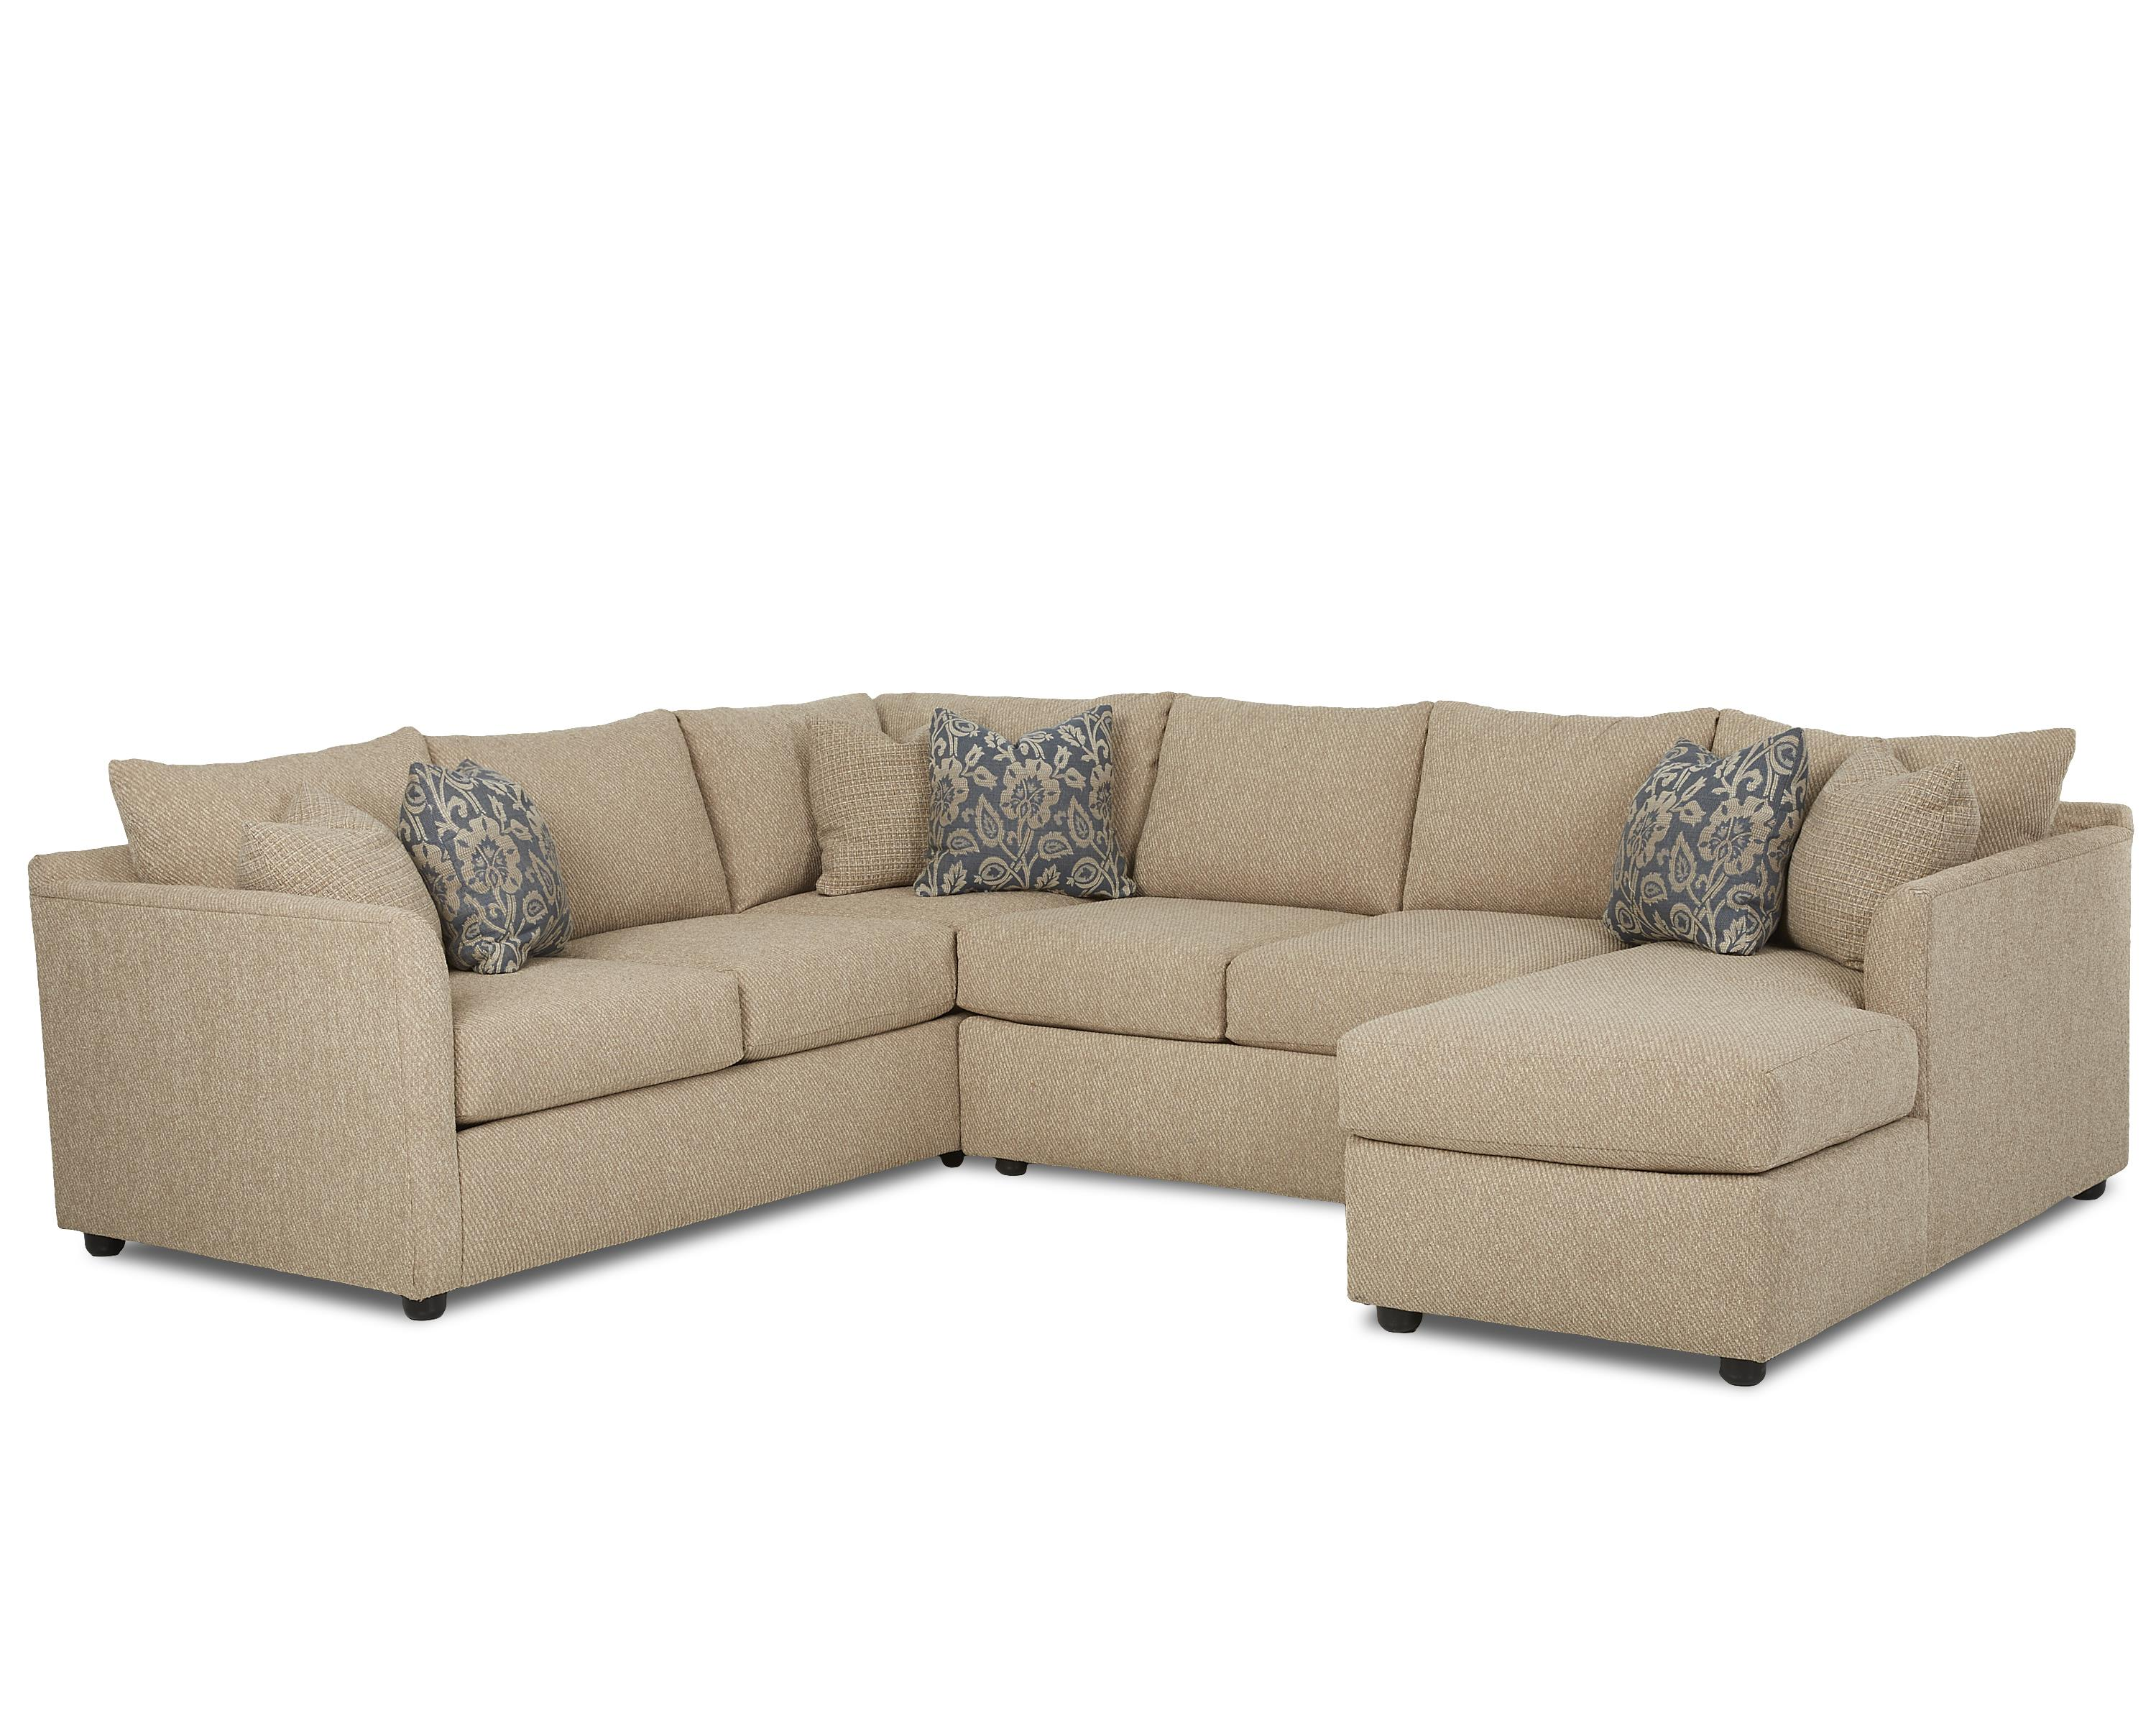 Transitional Sectional Sofa with Chaise  sc 1 st  Wolf Furniture : tuxedo sectional sofa - Sectionals, Sofas & Couches